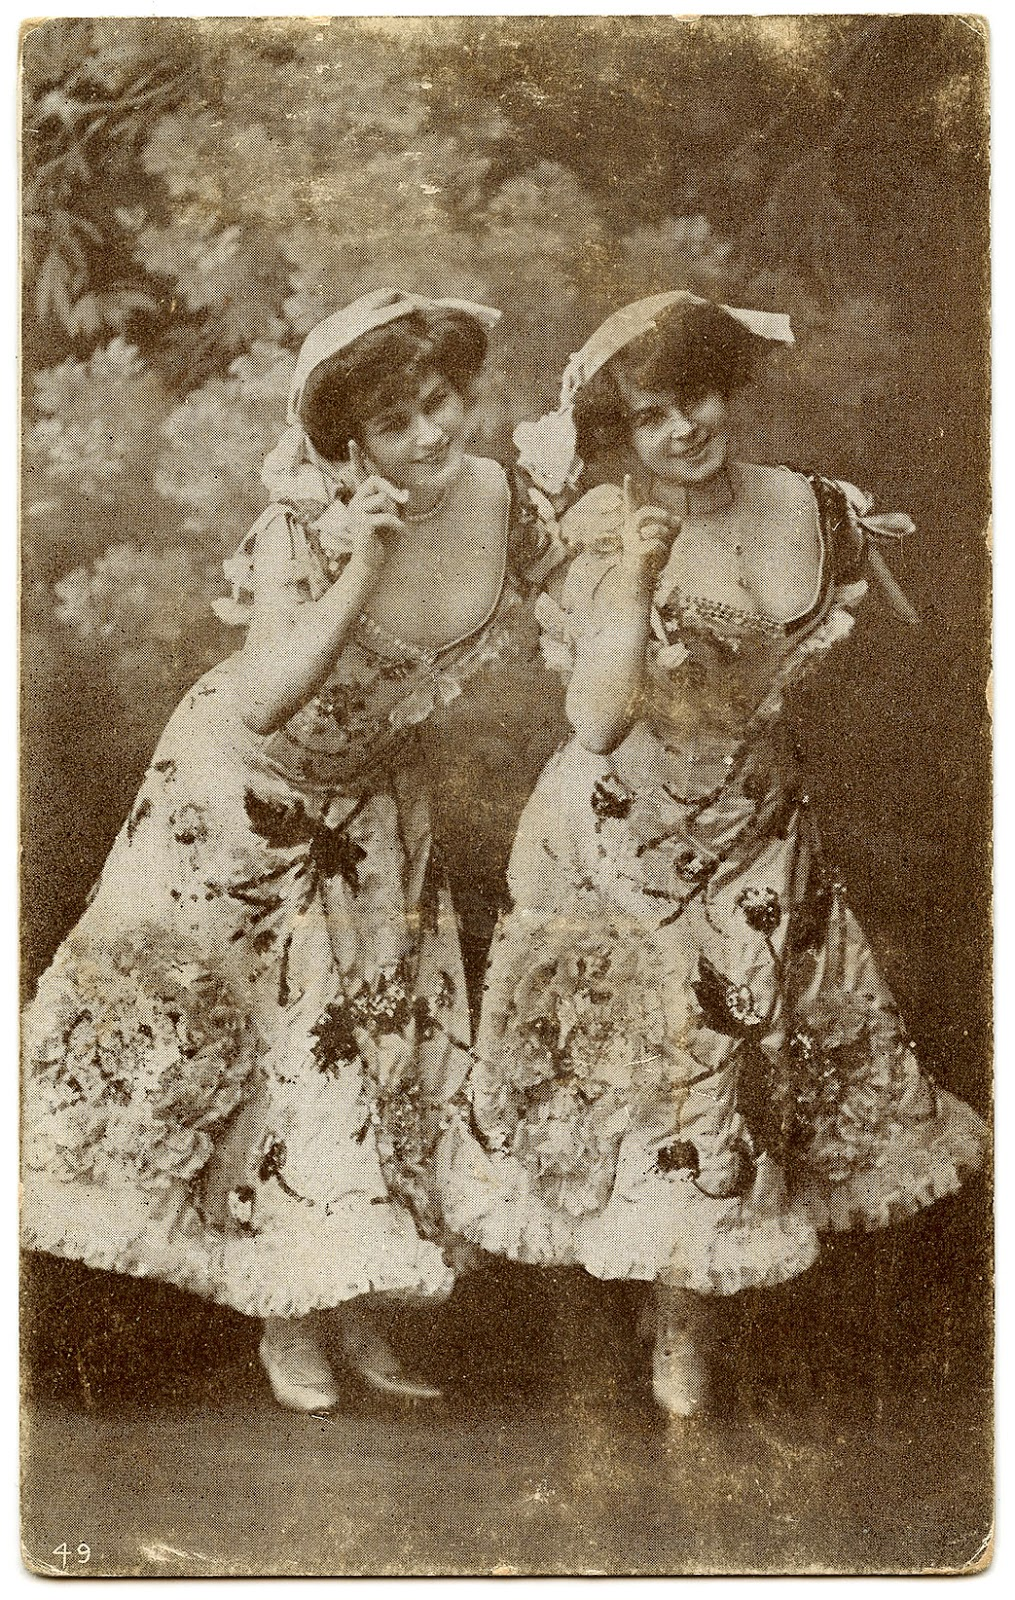 Old Picture of Dancers